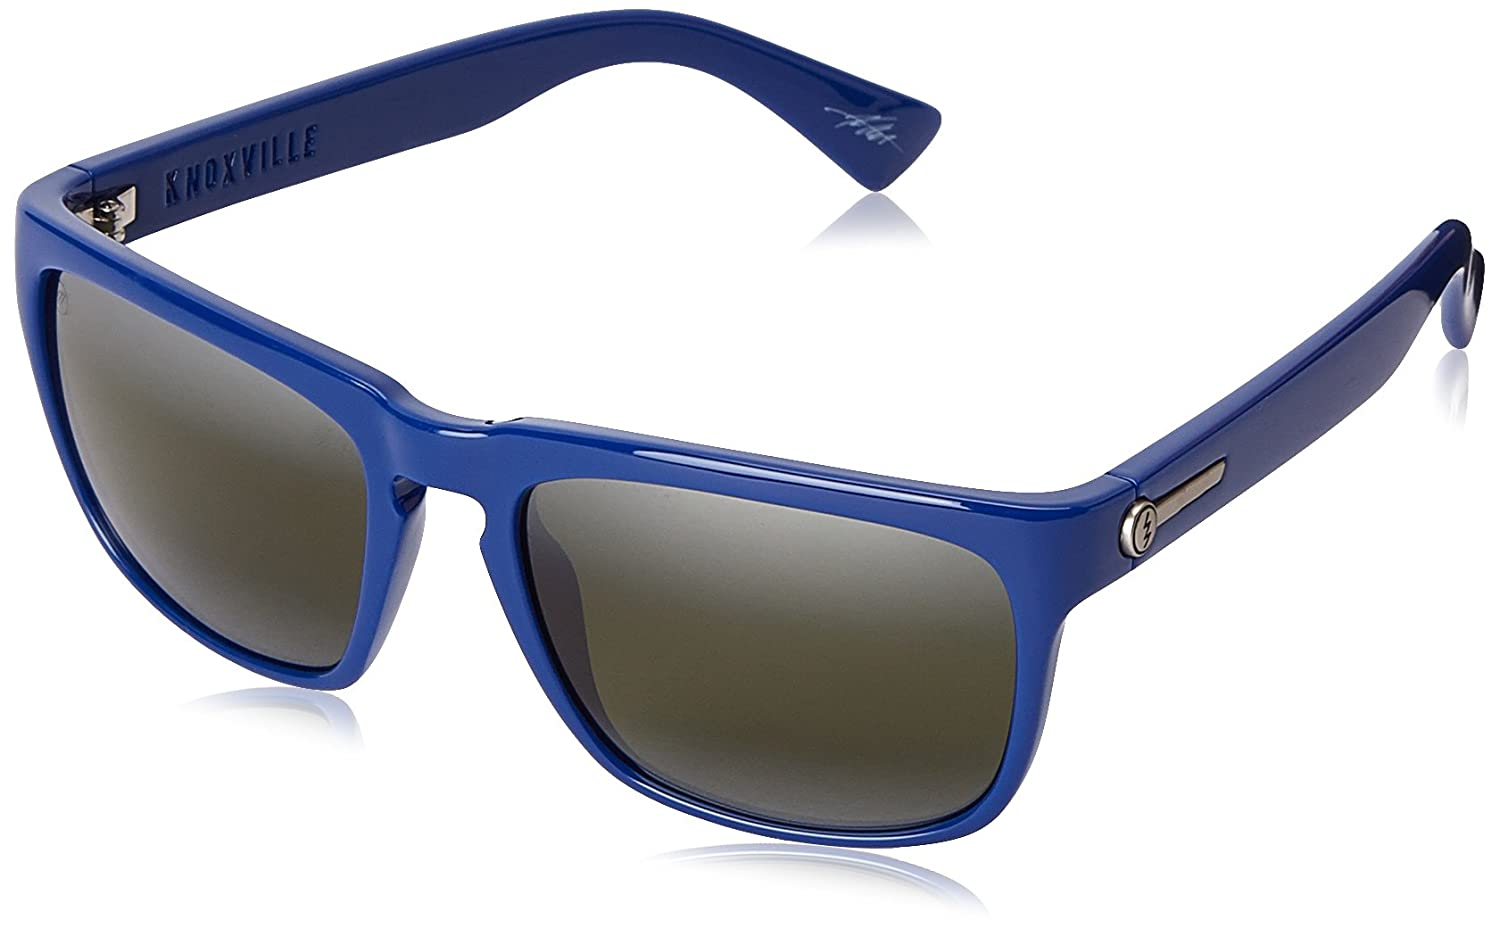 Amazon.com: Electric Knoxville Sunglasses Alpine Blue,54 mm ...